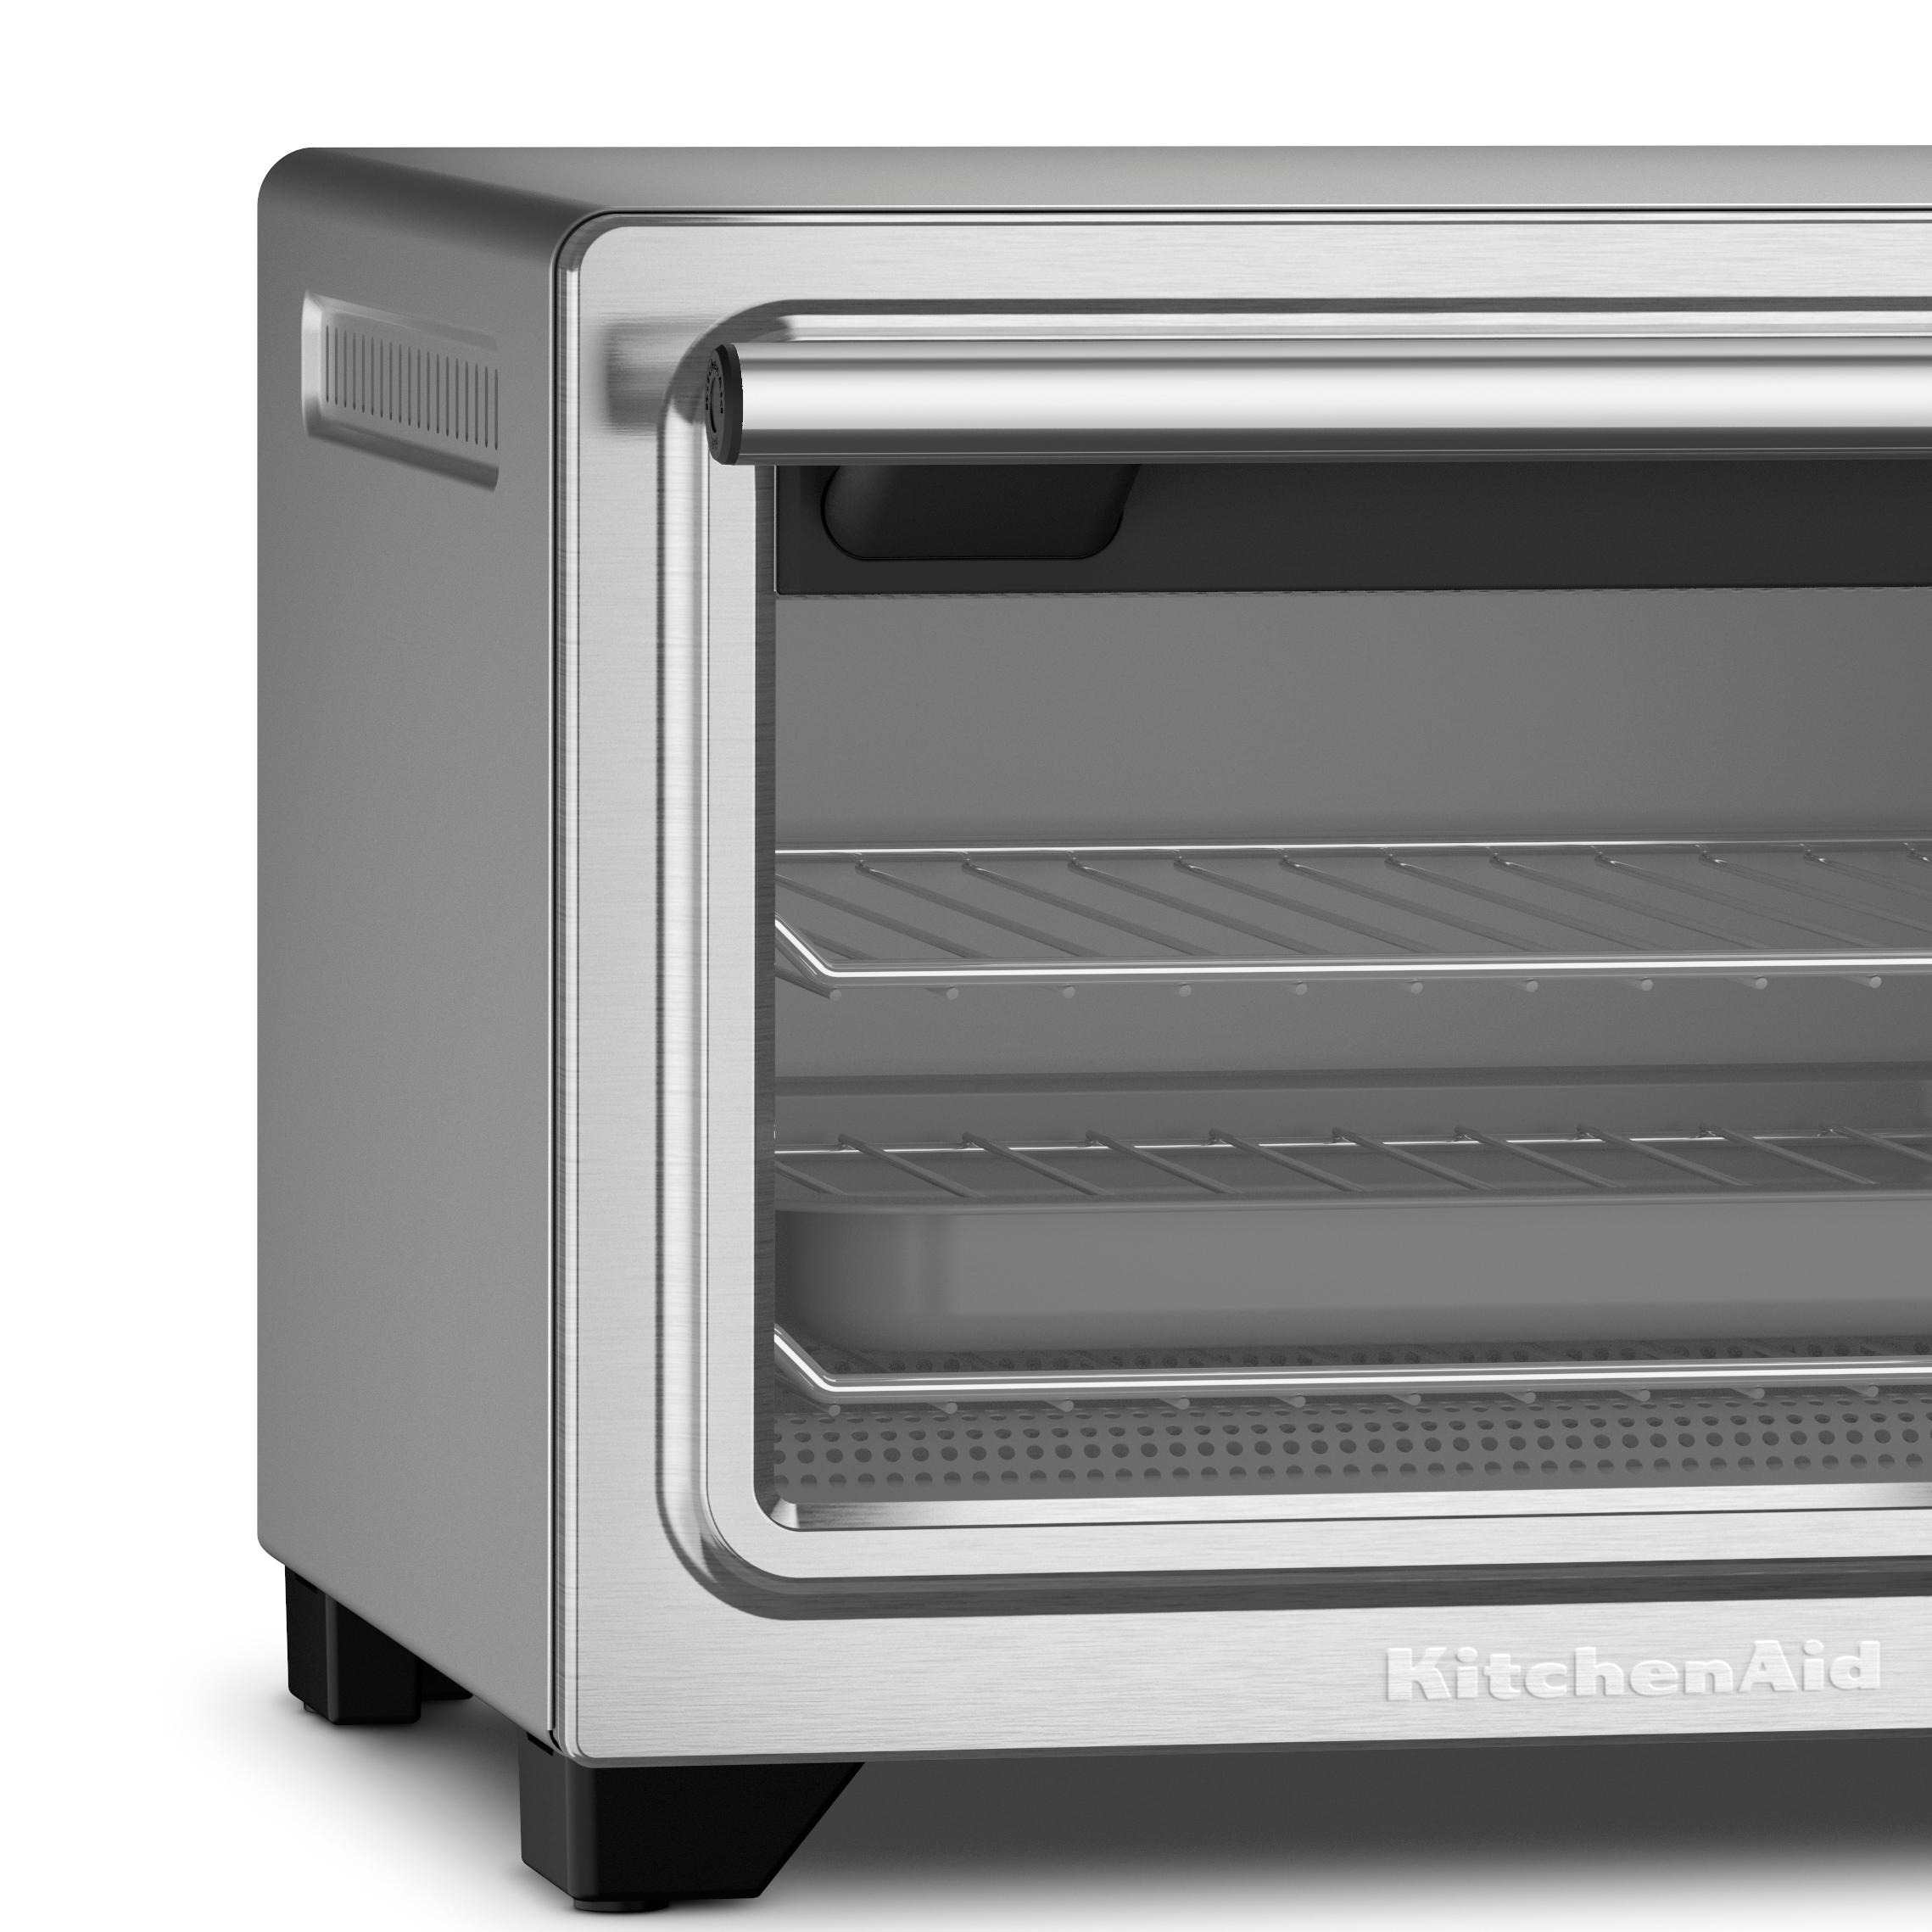 Countertop Convection Oven Kitchenaid : .com: KitchenAid KCO253CU 12-Inch Compact Convection Countertop Oven ...